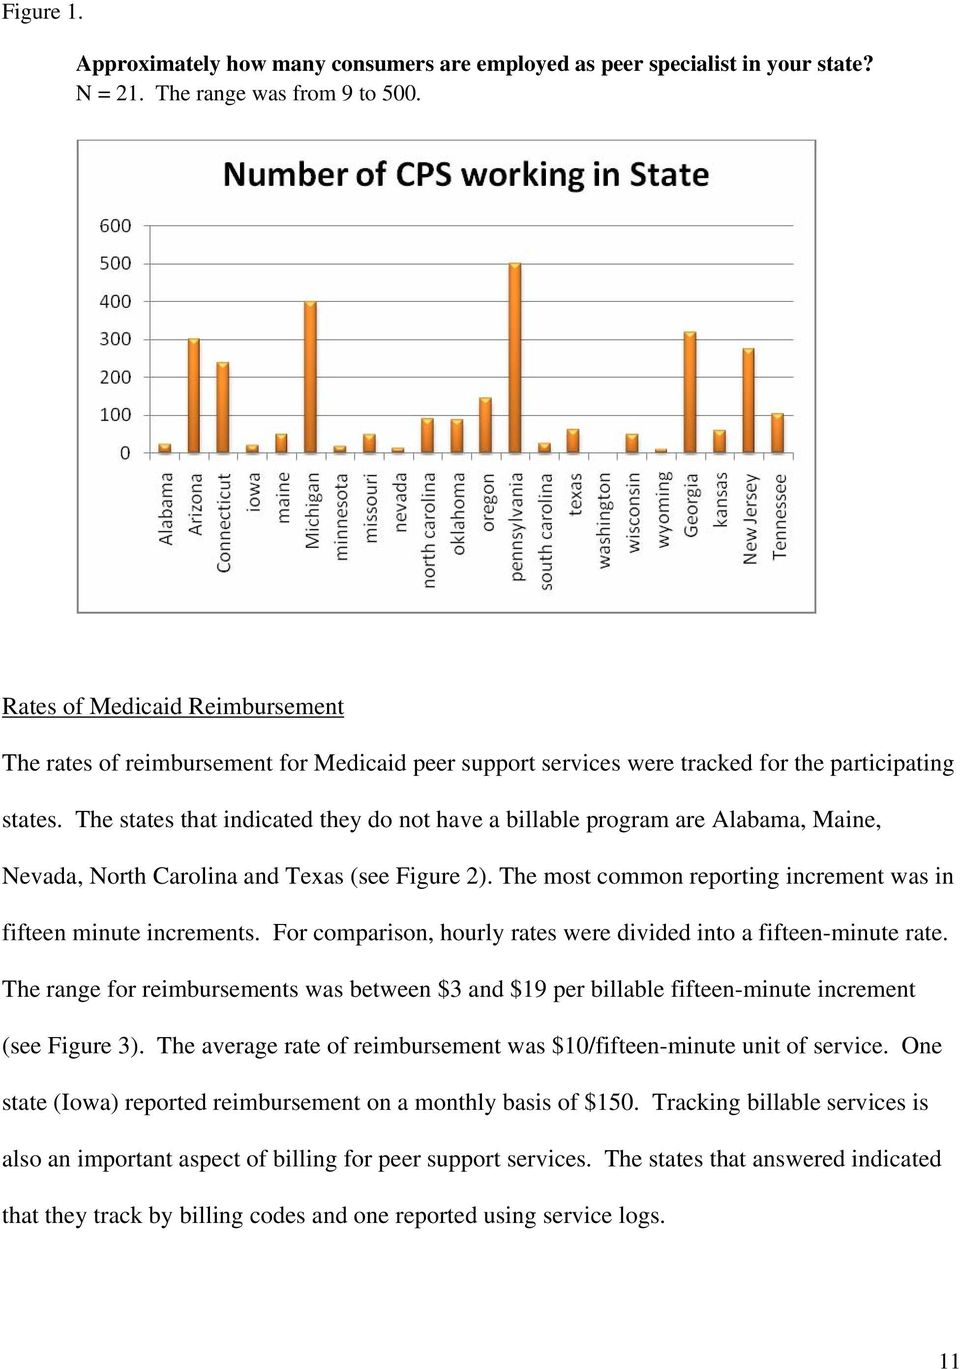 The states that indicated they do not have a billable program are Alabama, Maine, Nevada, North Carolina and Texas (see Figure 2). The most common reporting increment was in fifteen minute increments.